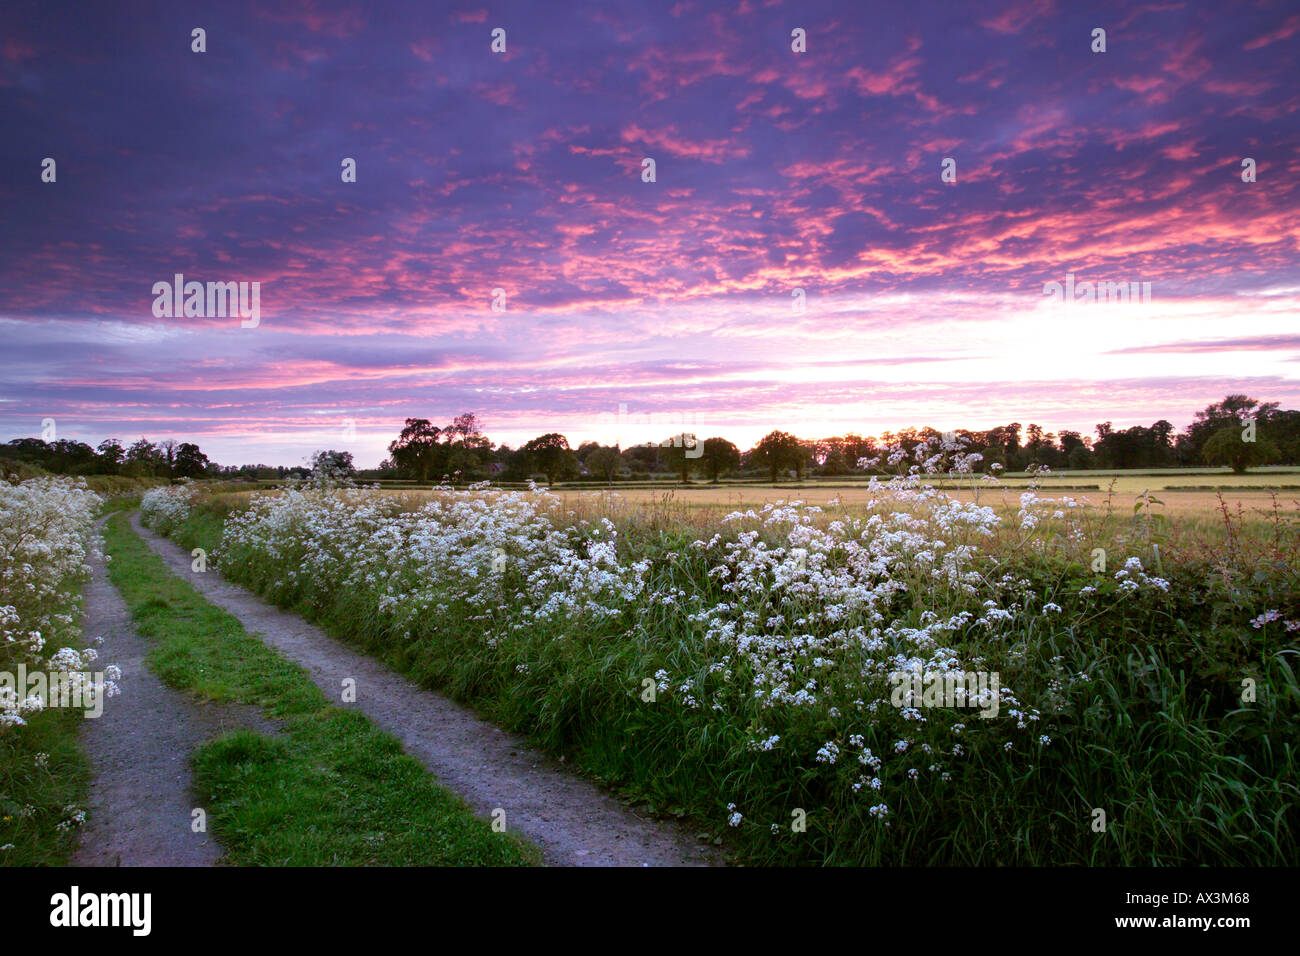 Sunset afterglow over corn fields and country lane, Askham Bryan village, York. - Stock Image